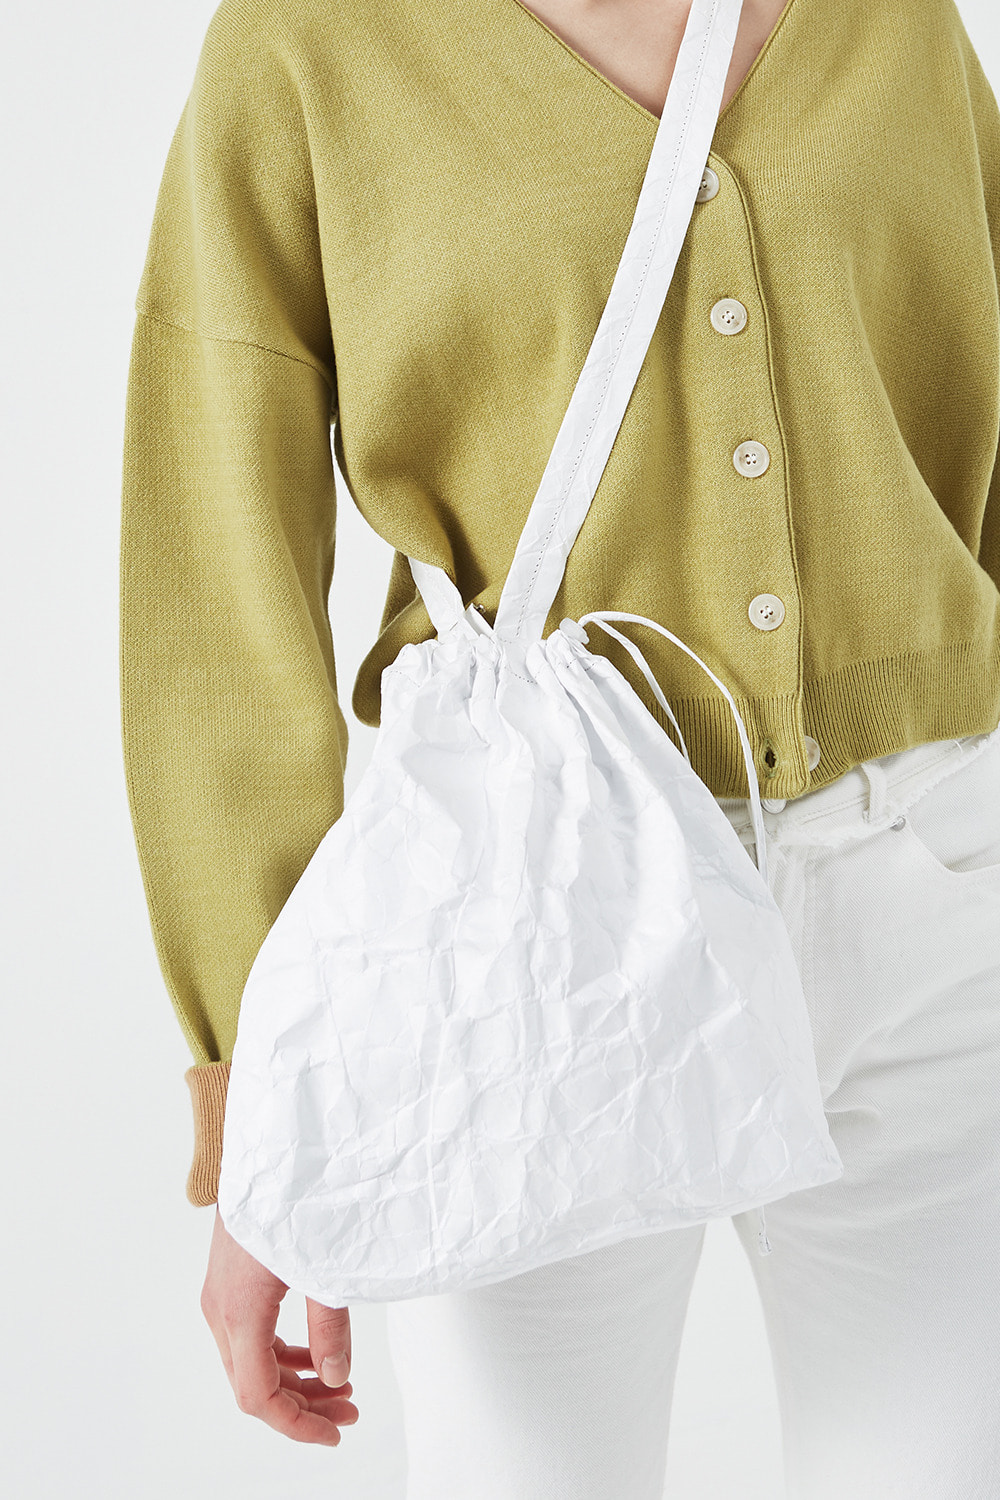 Eco Bag White